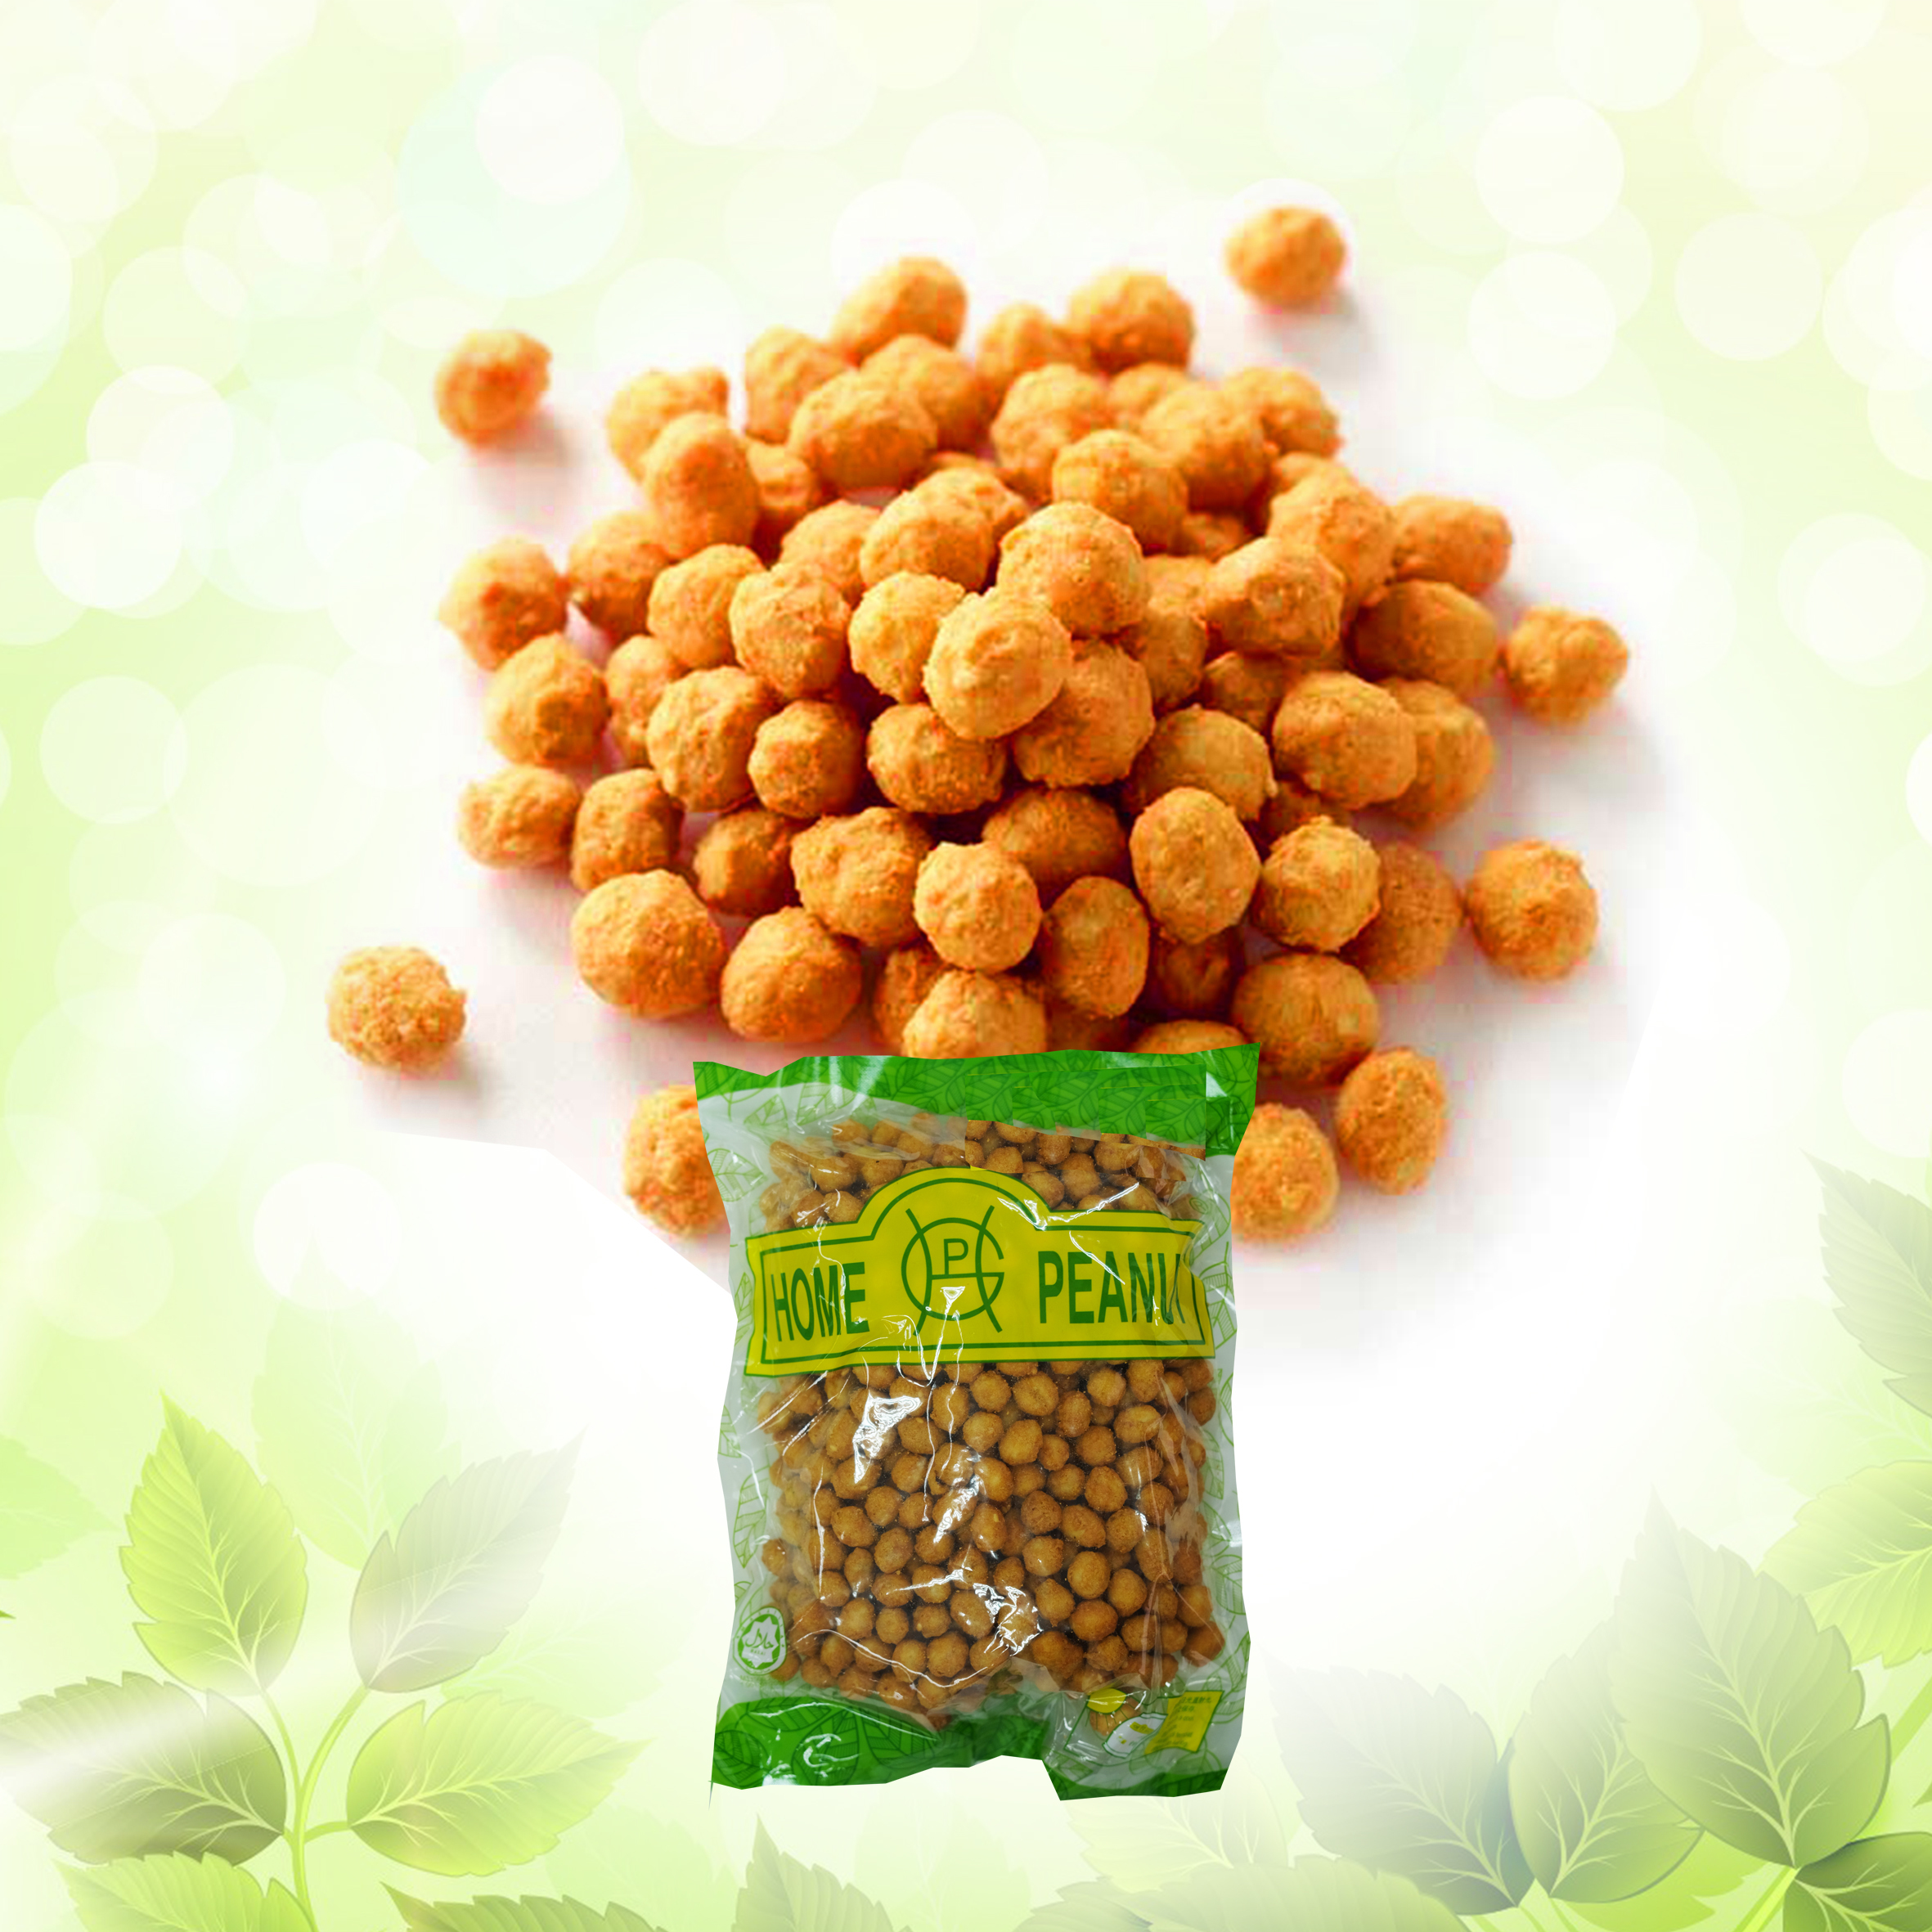 Curry Peanut Sesame Home Garden Front Images.jpg